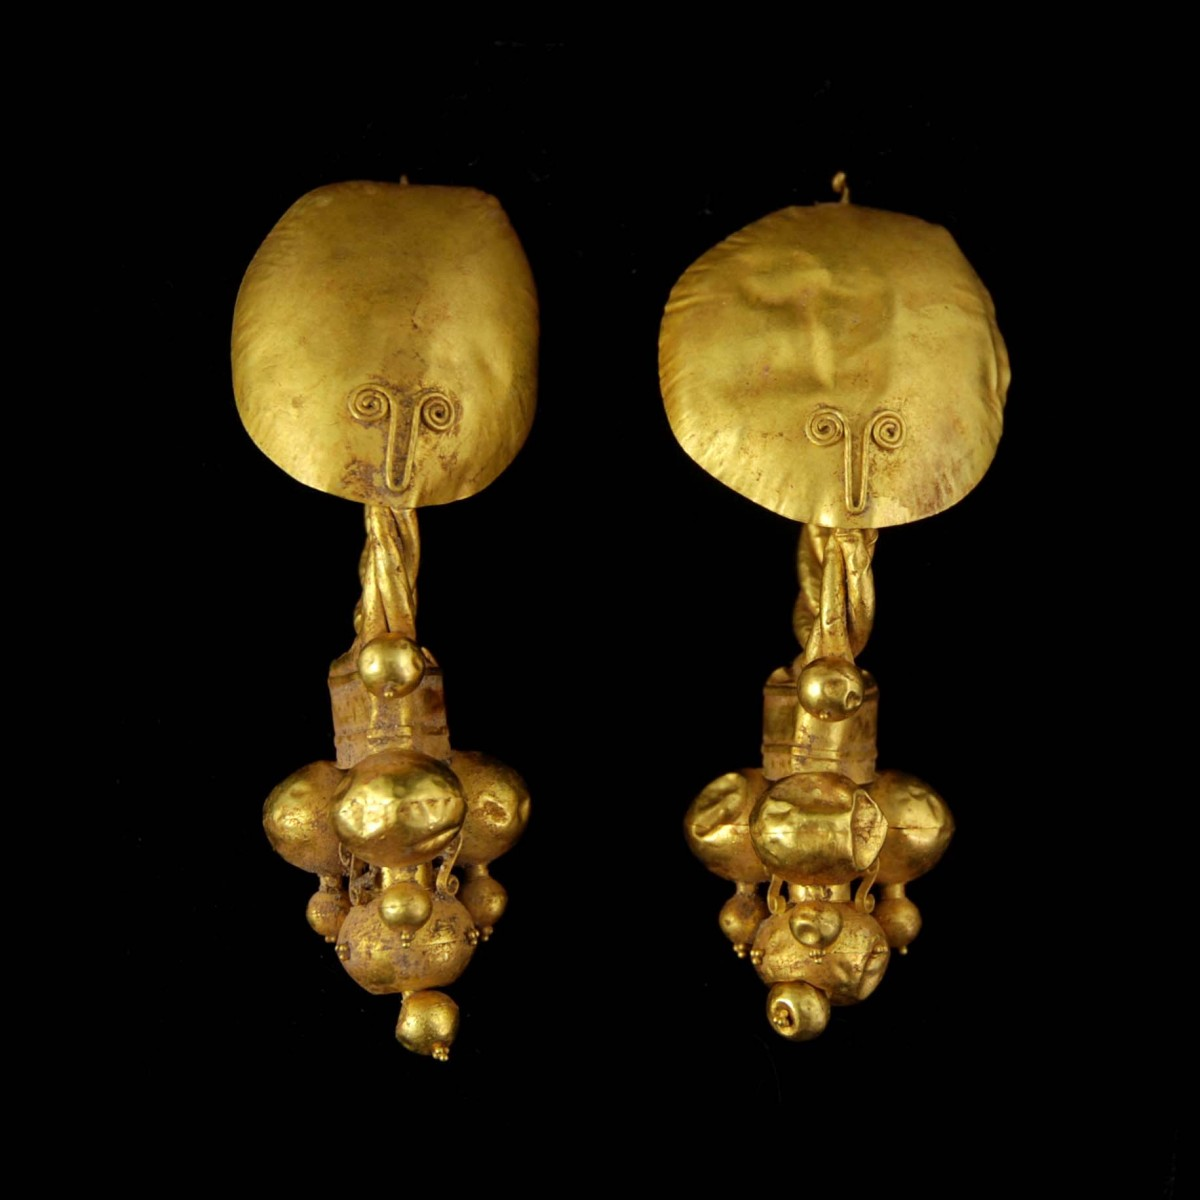 Roman Gold earrings with stilized faces